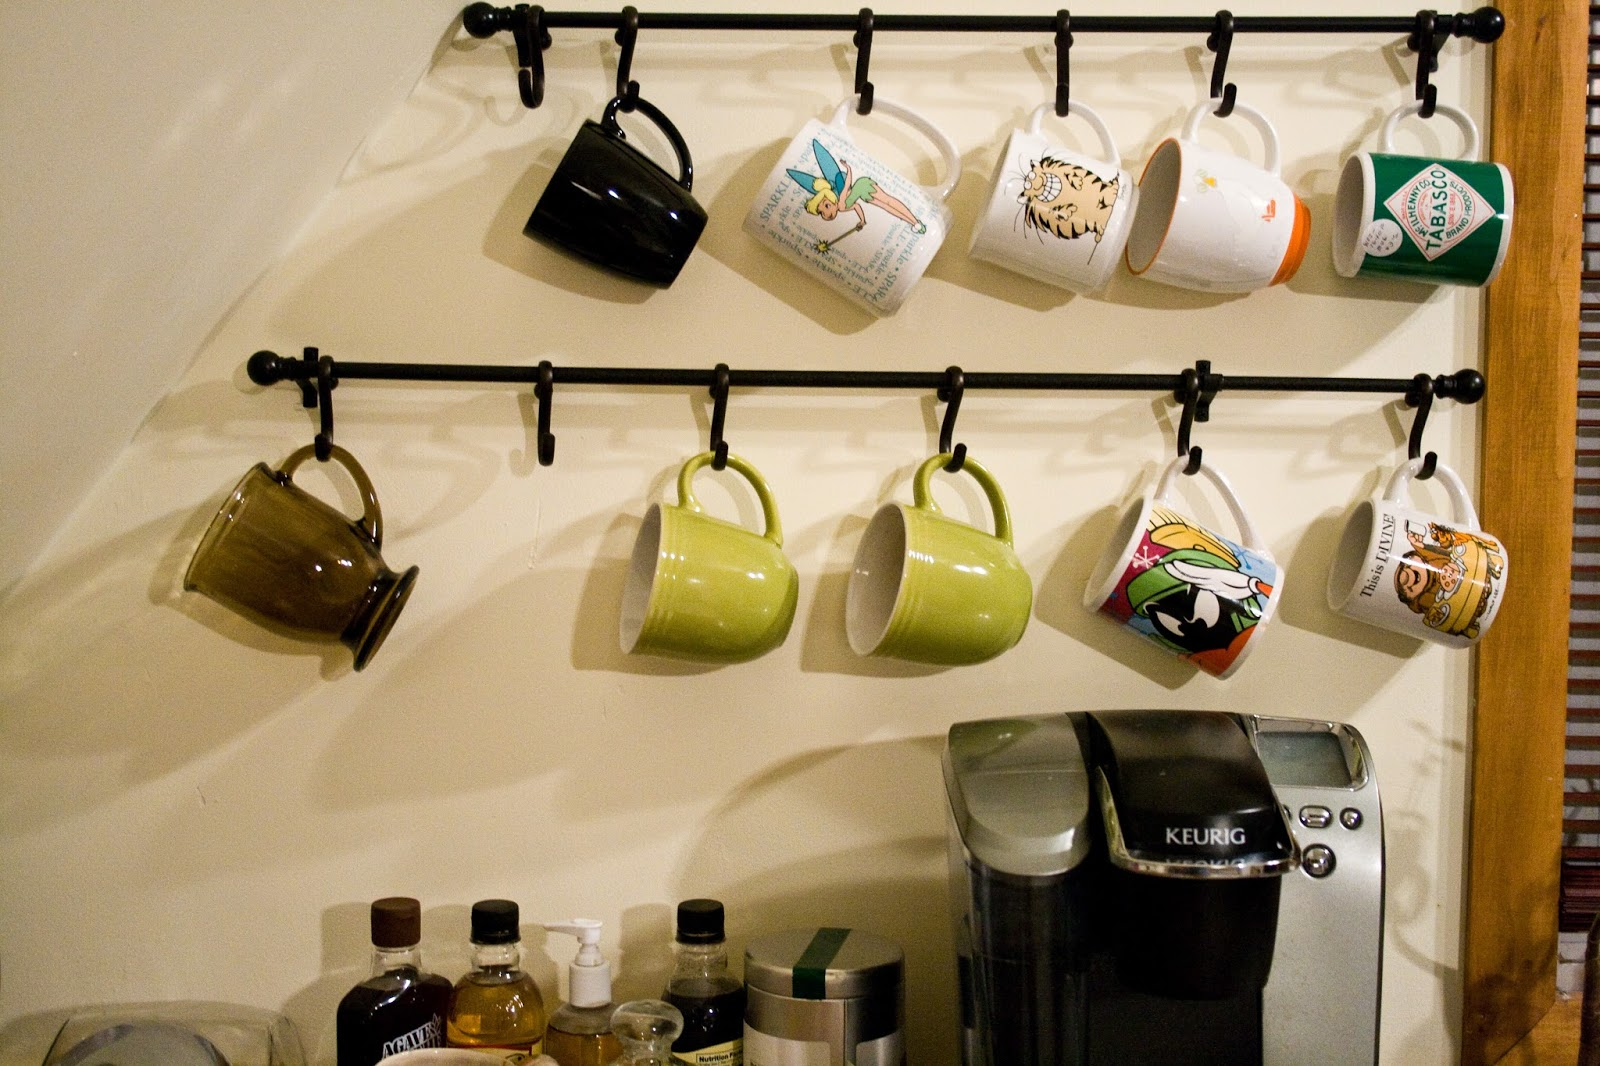 five sixteenths blog: Wednesday Decor // Three Ways to Use Shower Hooks to  Organize